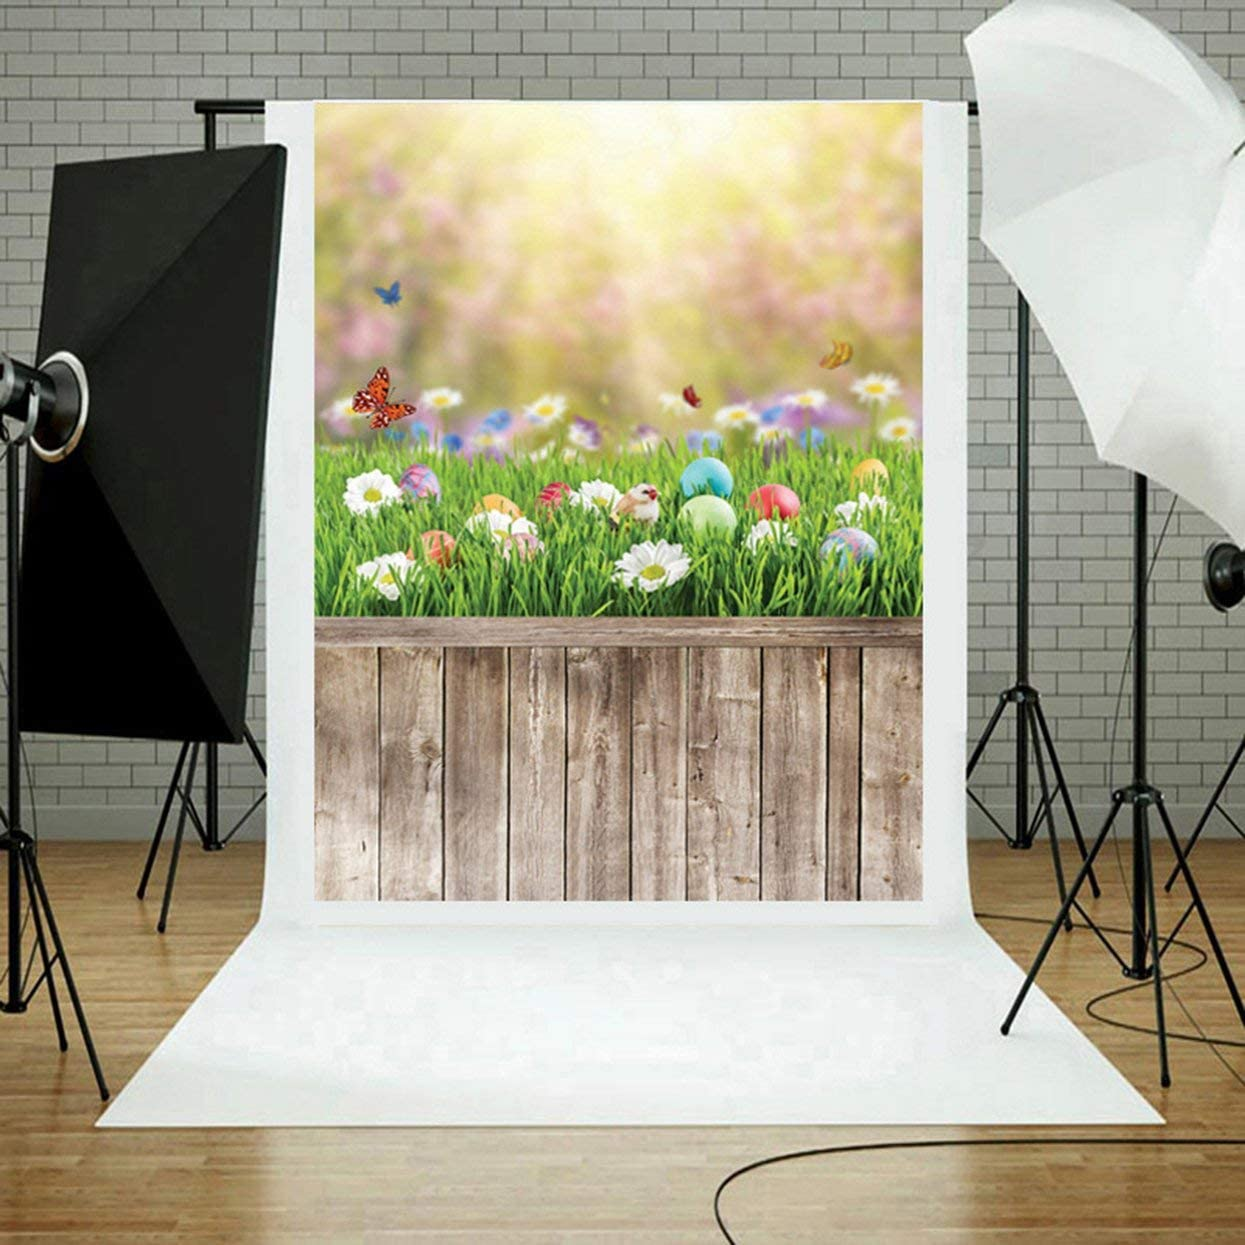 Multi-Functional Photography Background Cloth Studio Prop Pictorial Cloth Photo Backdrops for Exquisite Presents